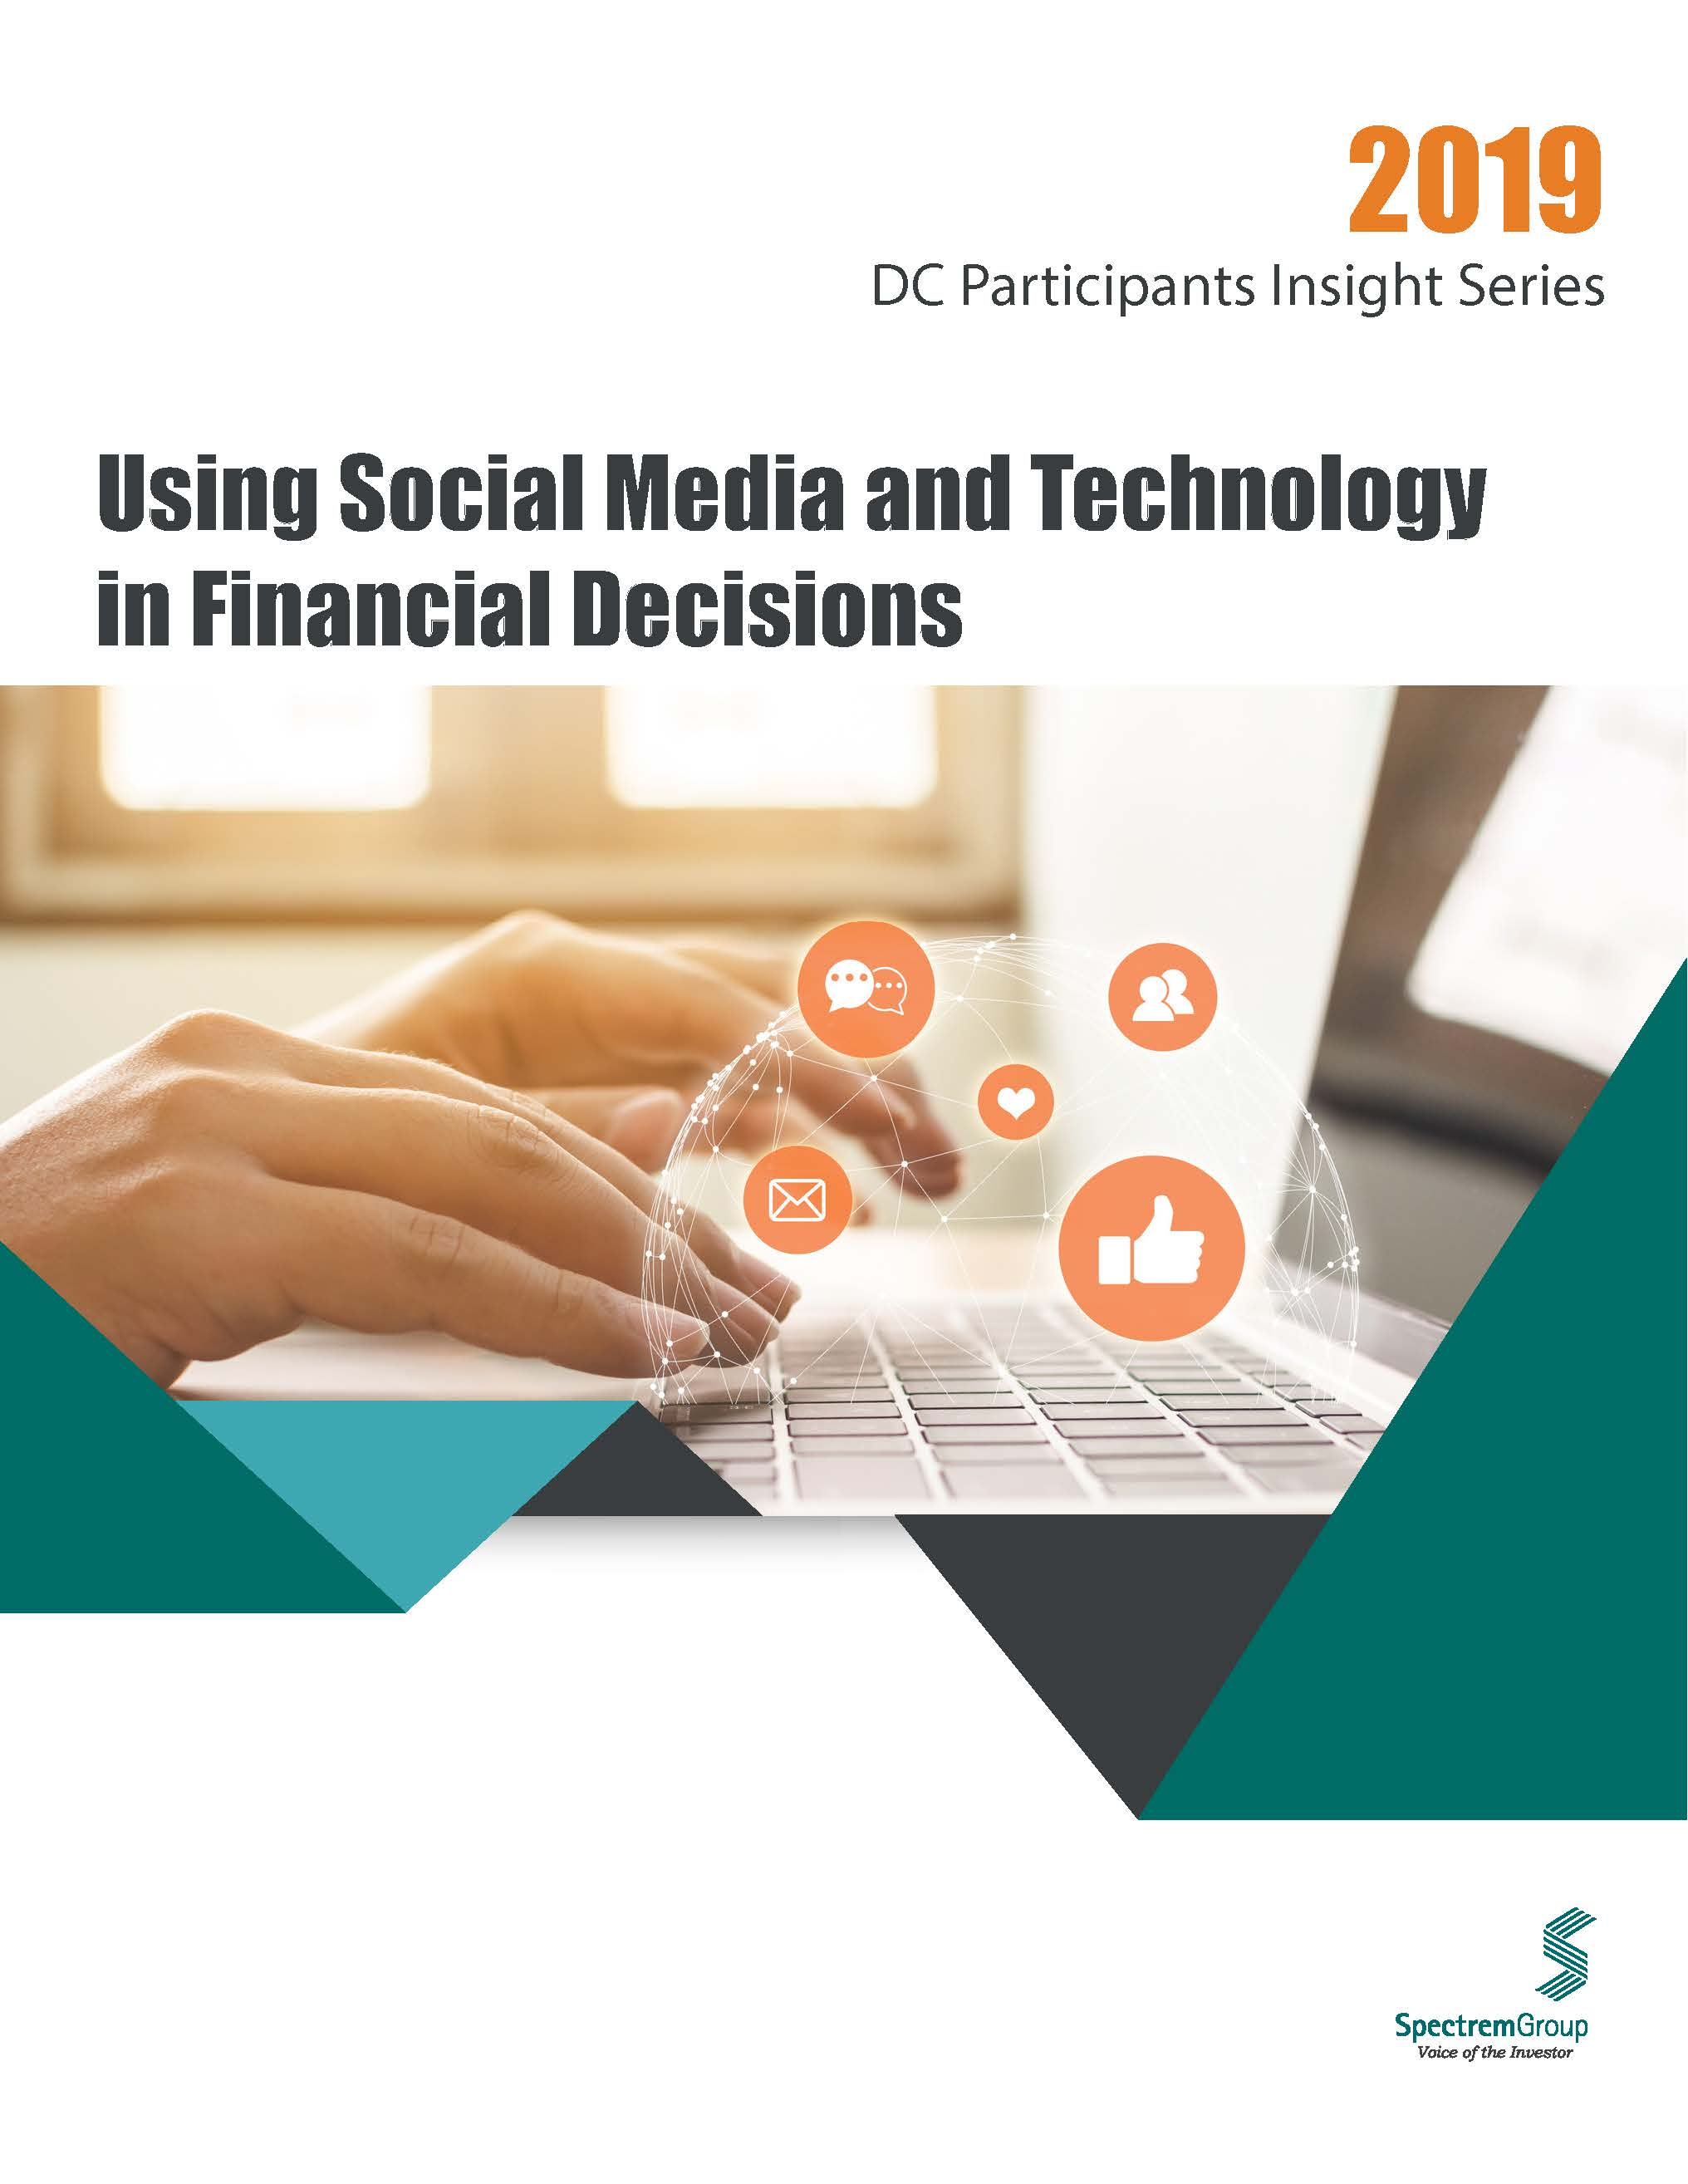 2019 DC Participant Insight Series: Using Social Media and Technology in Financial Decisions